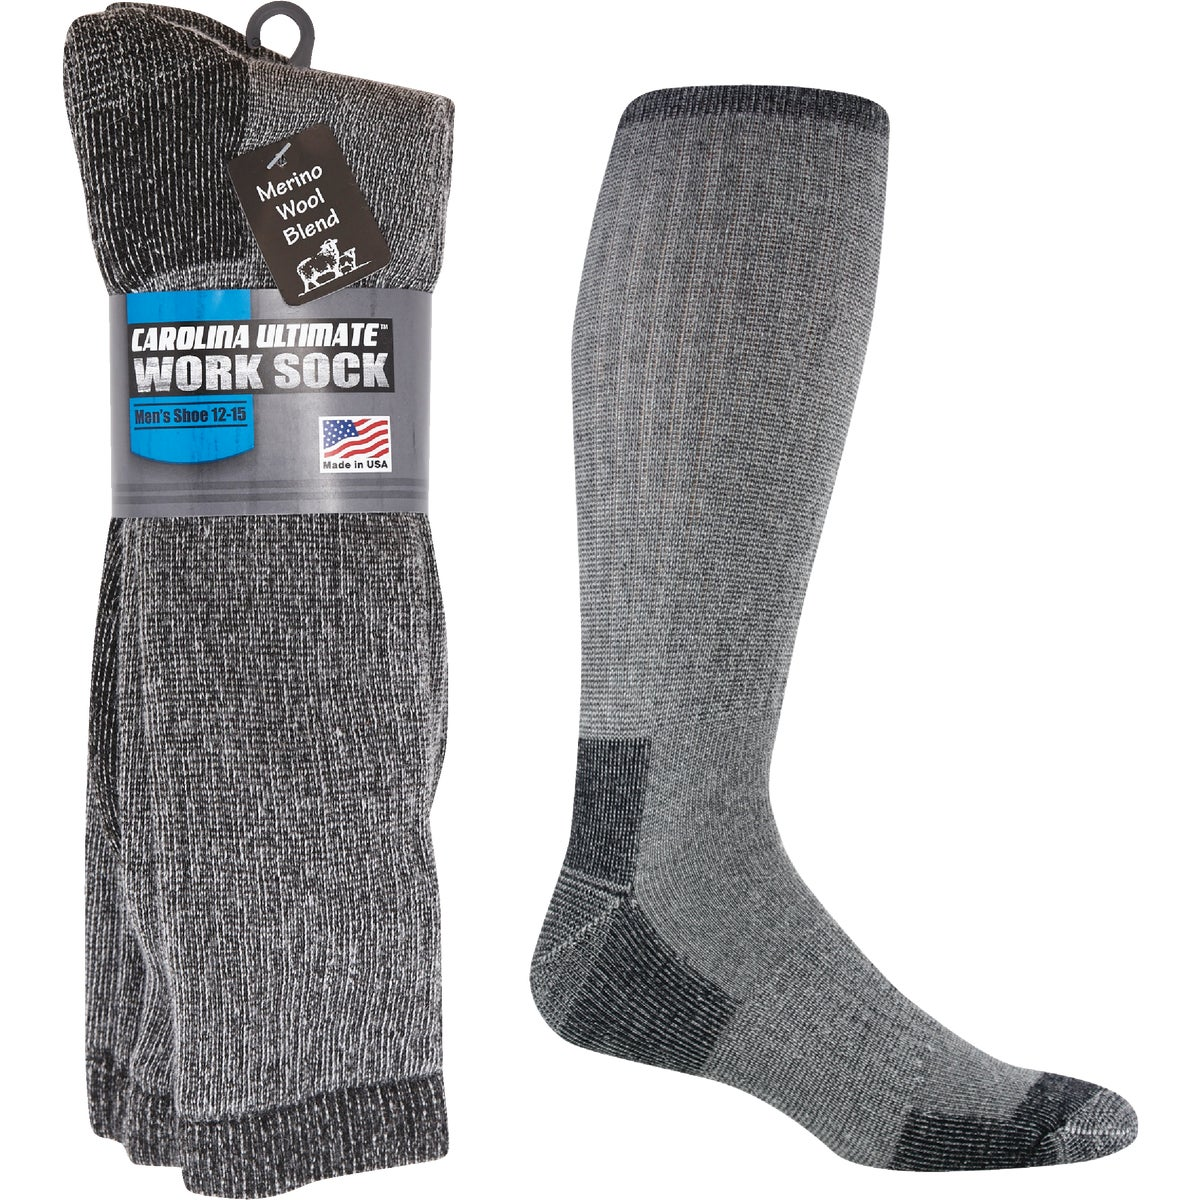 XL 40BELOW BLACK SOCK - F2230-052XL by Wigwam Mills, Inc